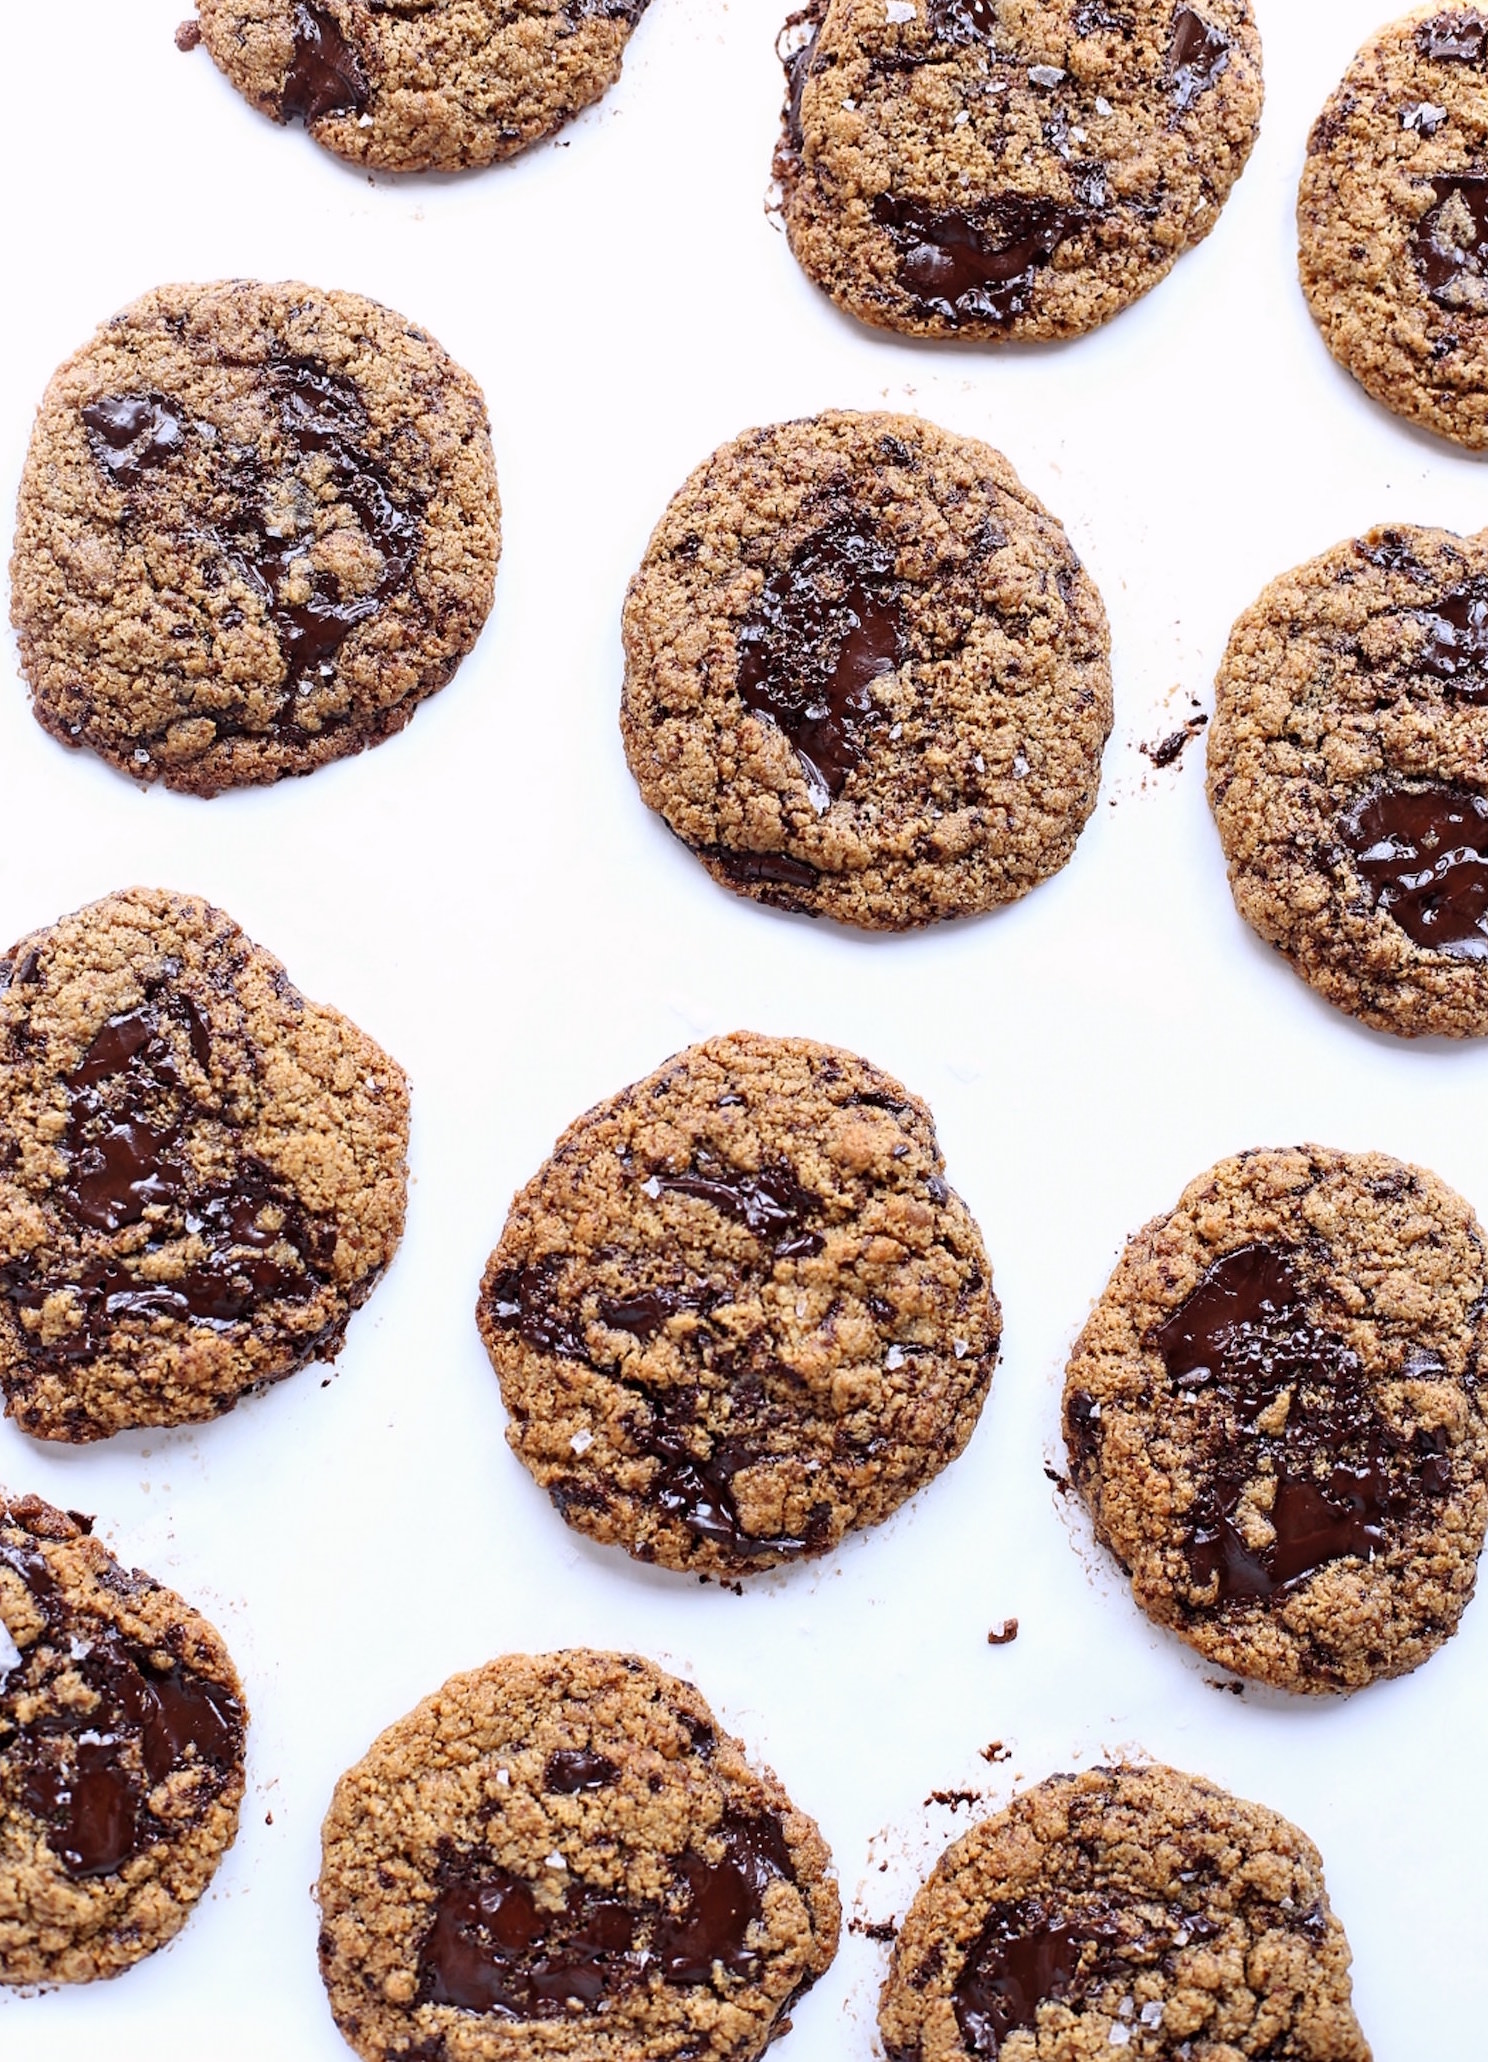 Wholesome Flourless Tahini Cookies: super chewy tahini cookies packed with chocolate chunks and flavor. So easy and nutritious too! | TrufflesandTrends.com